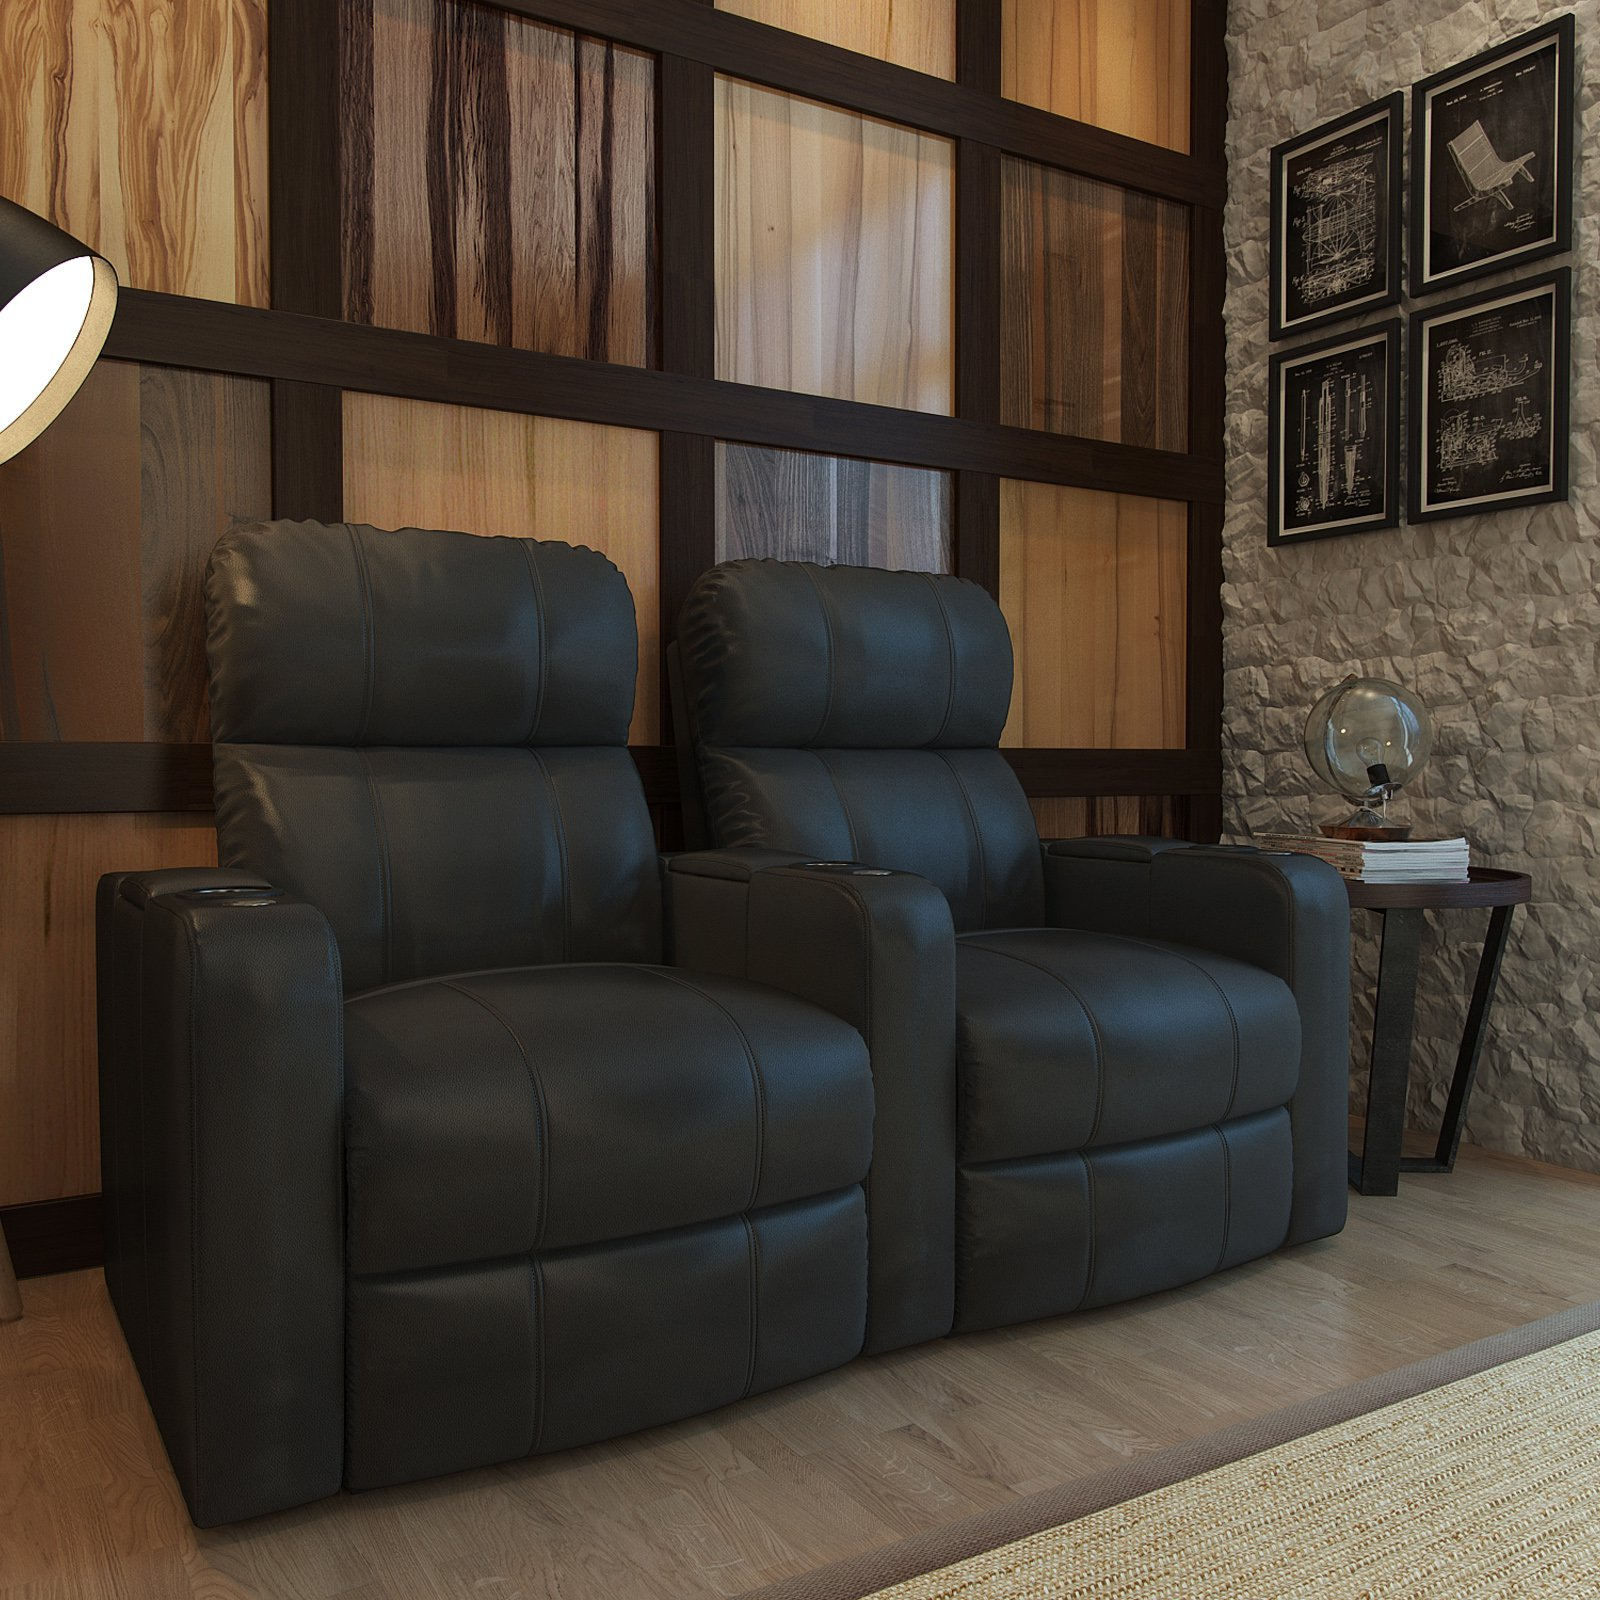 Octane Turbo XL700 2 Seater Bonded Leather Home Theater Seating